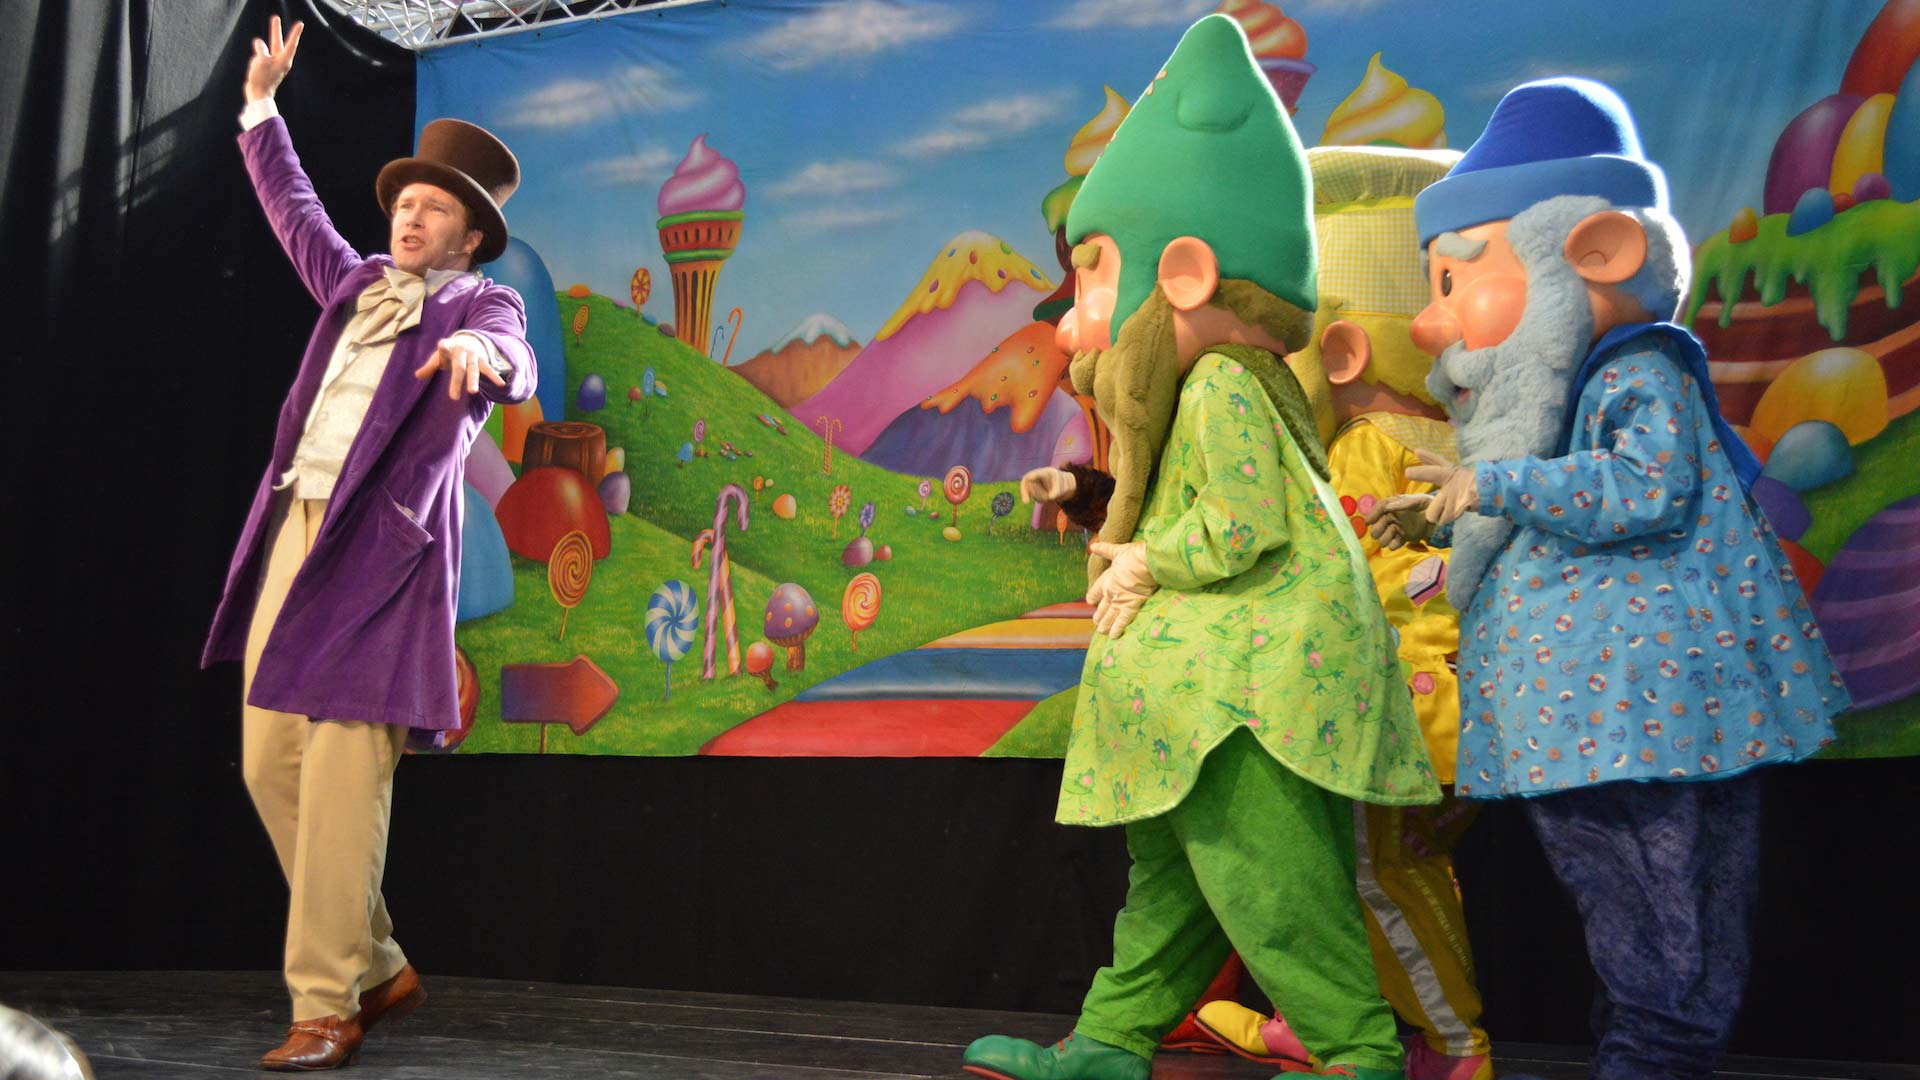 One of our many MetroCentre Gateshead shows, featuring Willie Wonka and the Q20-created MetroGnomes.